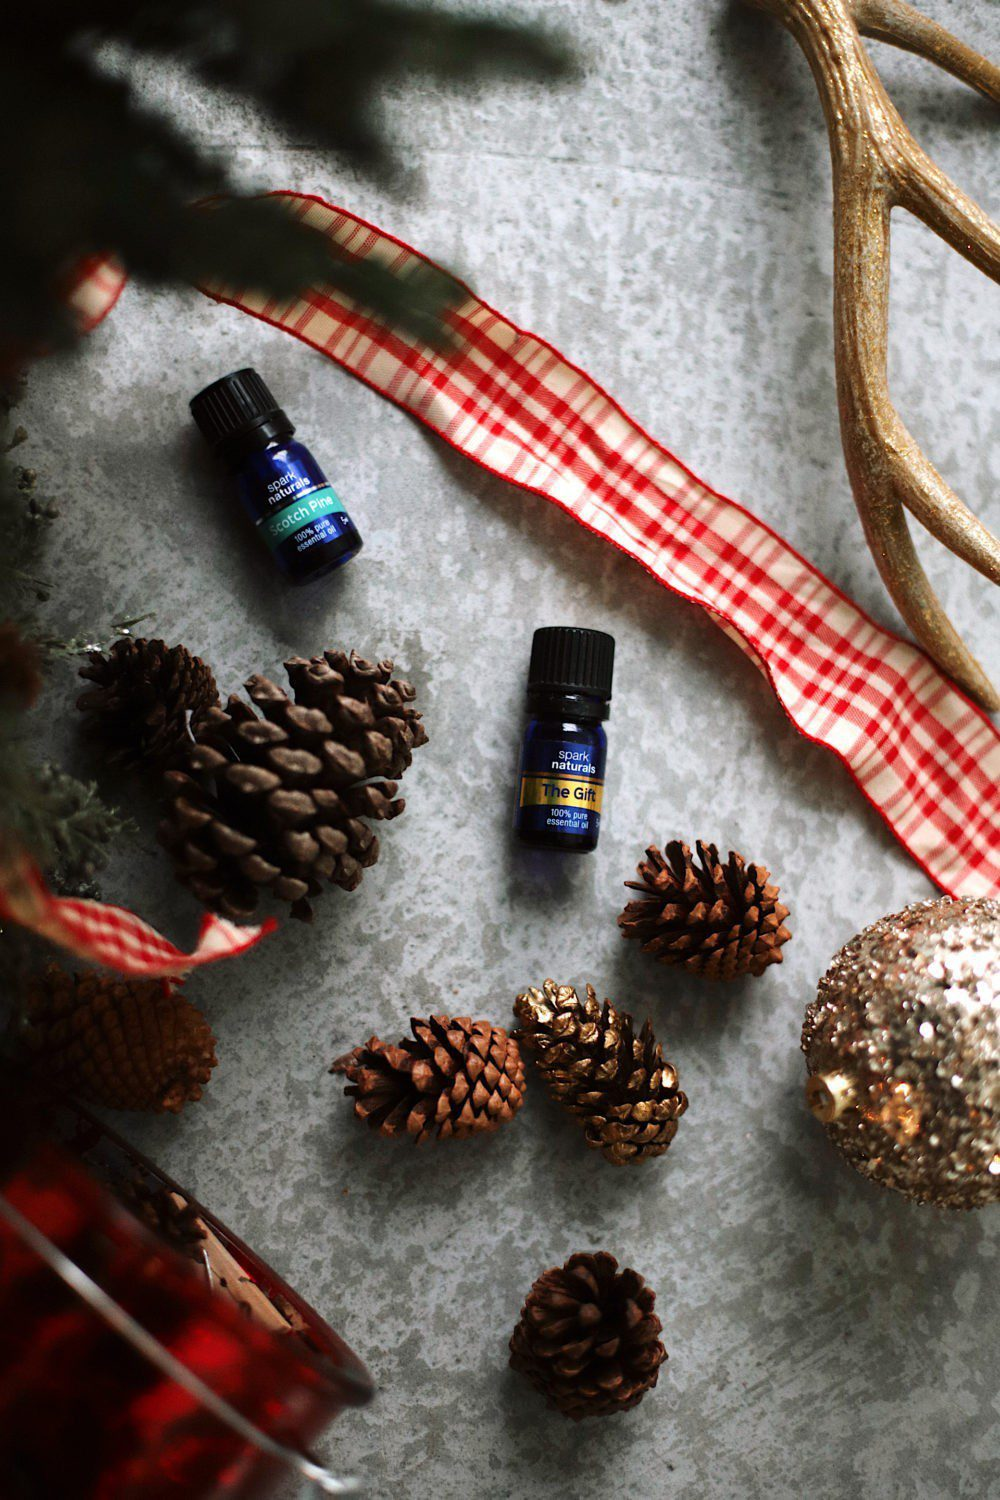 Hopefully, you are enjoying all the love, happiness, and high spirits the holidays bring, though research shows that approximately 70% of people experience stress during the holidays due to time and money pressures. When you are having those conflicting feelings it is important to focus on the positive. One thing that truly helps reduce stress and fill our home with joy is through using Christmas Essential Oils. It might sound crazy, but one of the known benefits of essential oils is that they can lift your mood. There are numerous other benefits of essential oils, so we compiled a list of the top Christmas essential oils that can help you through the holiday season with a smile on your face. We're breaking them all down below for 12 days of Christmas essential oils!   12 Christmas Essential Oils to Fight Stress by popular Florida life and style blog, Fresh Mommy: image of Spark Naturals The Gift and Scotch Pine essential oils.